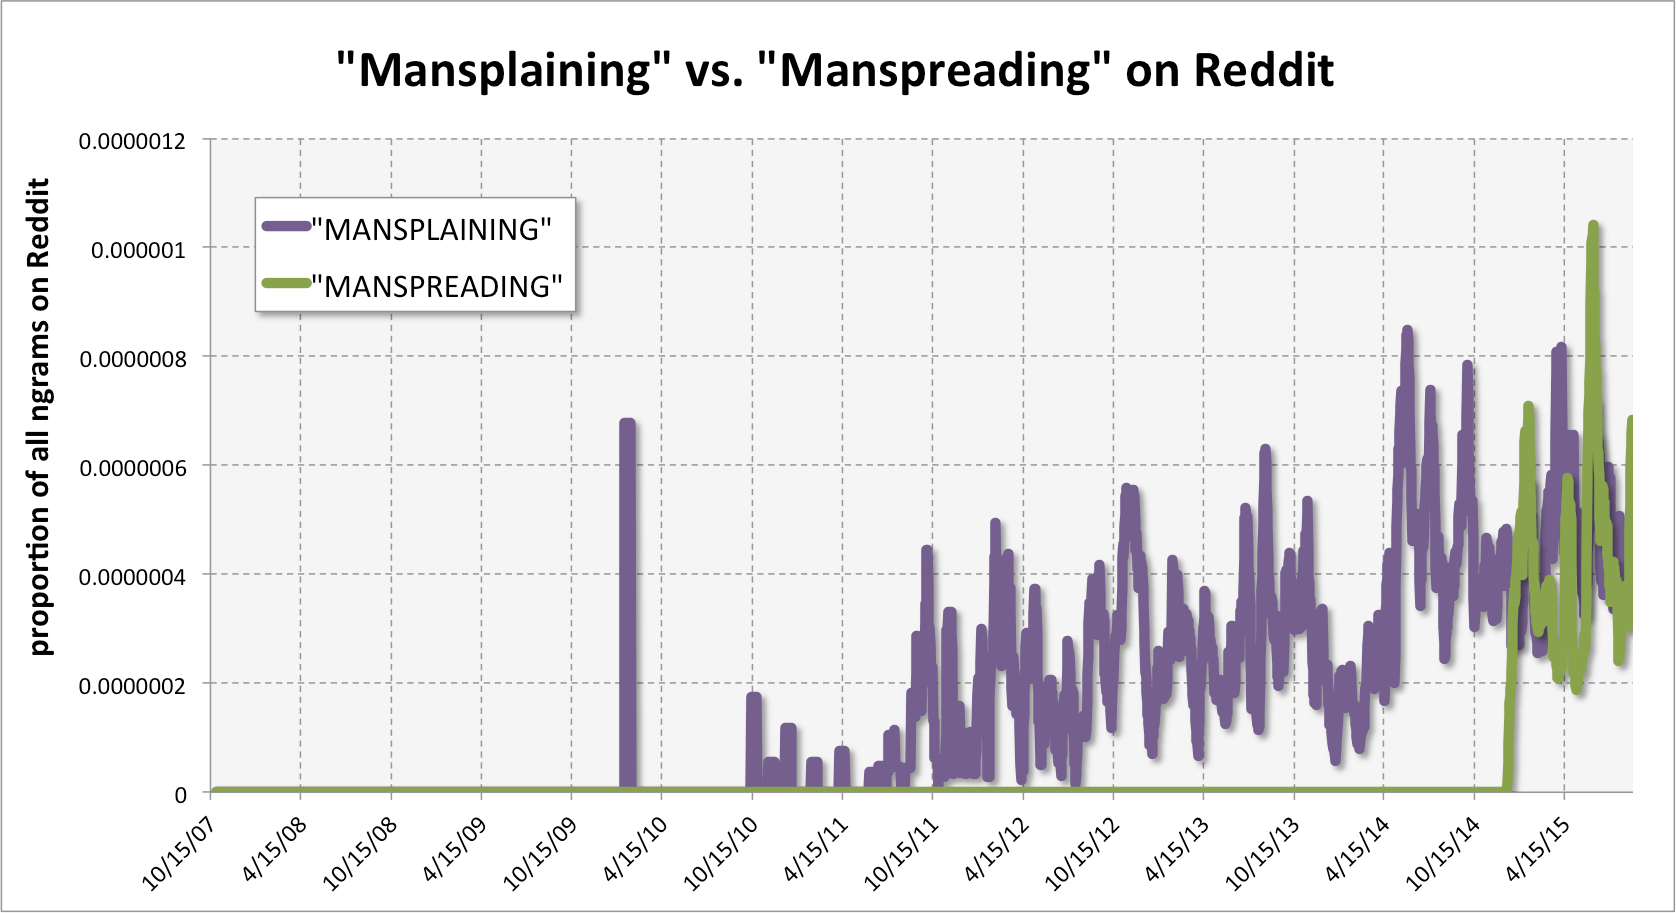 Mansplaining vs. Manspreading